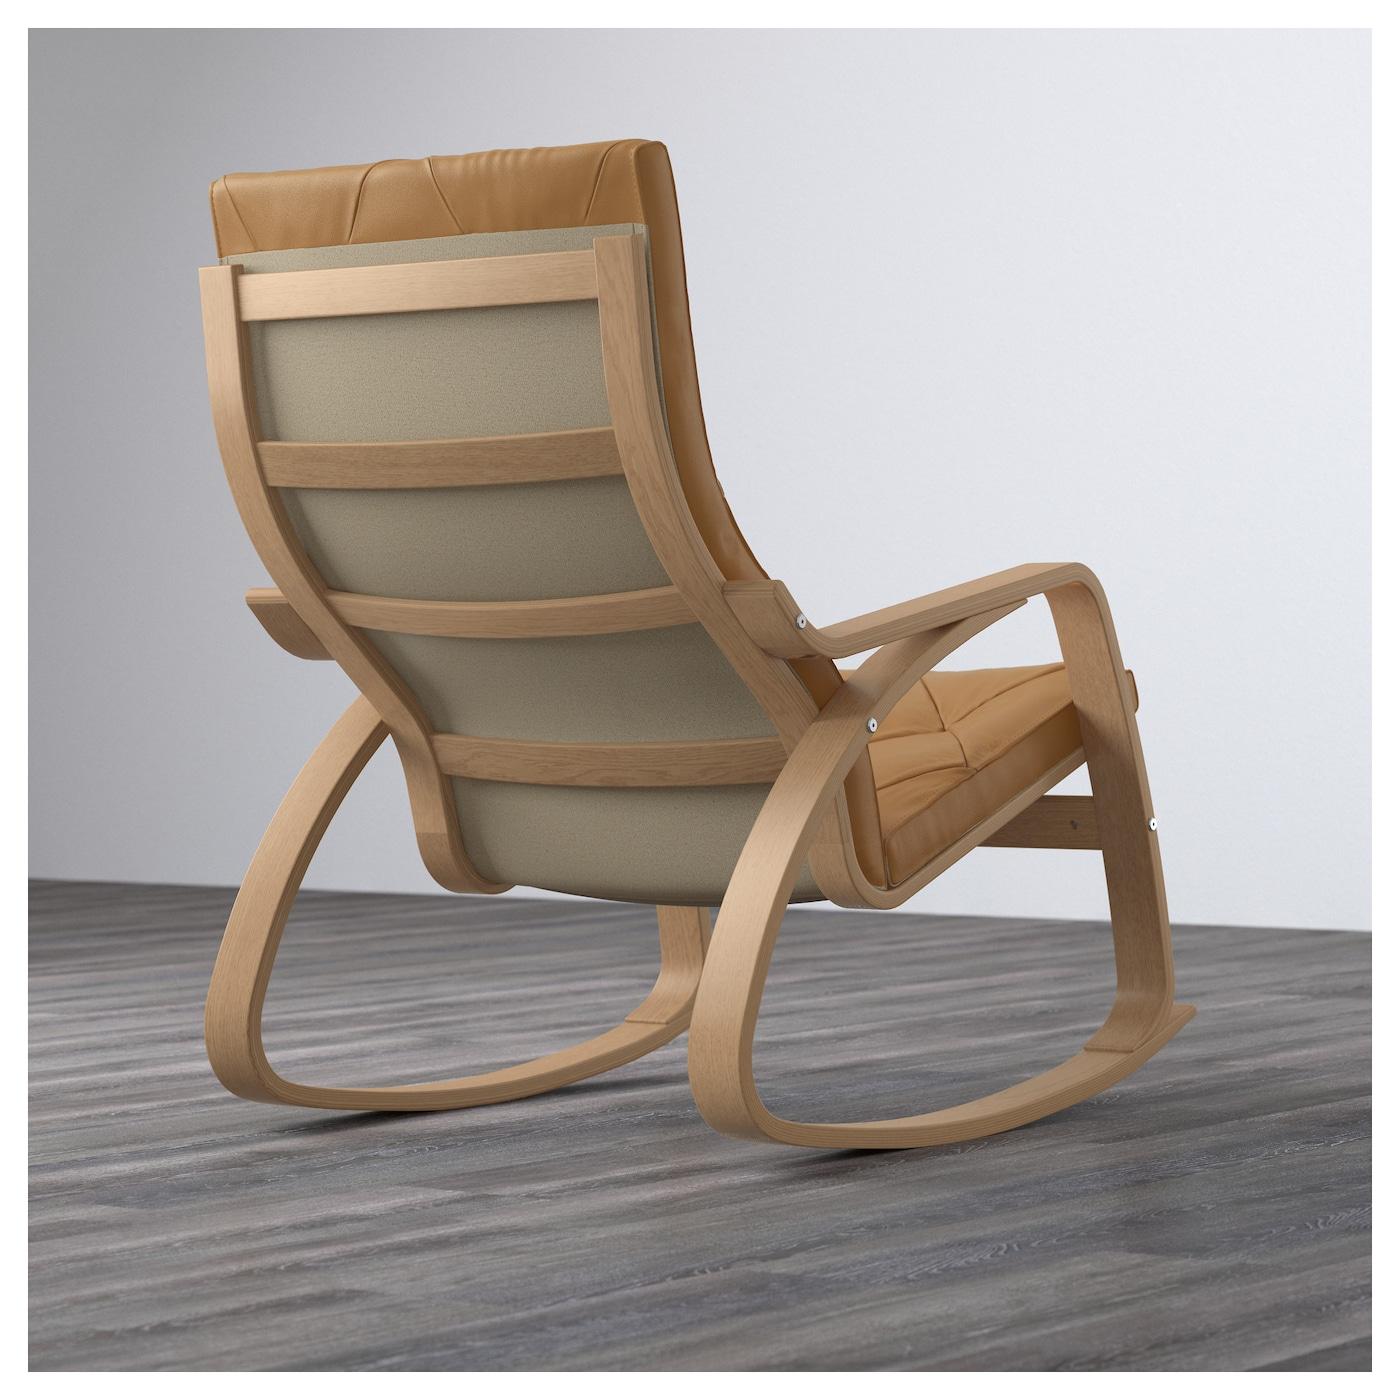 #8D663E IKEA POÄNG Rocking Chair Layer Glued Bent Oak Gives Comfortable  with 2000x2000 px of Most Effective Ikea Oak Chairs 20002000 wallpaper @ avoidforclosure.info